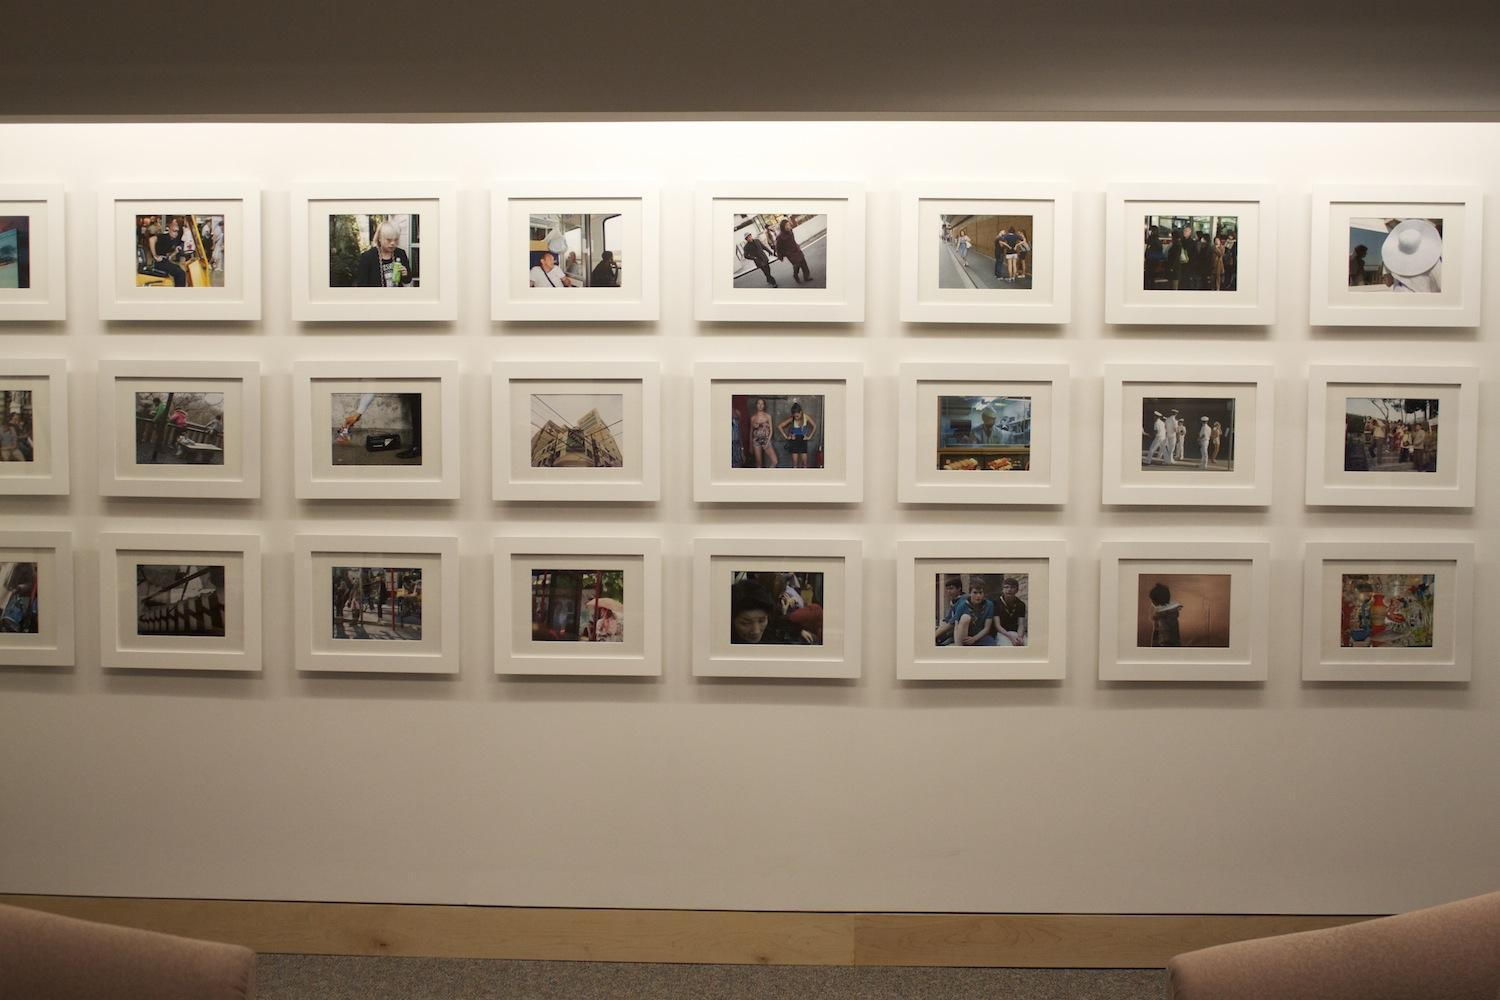 Hayden Hartnett's Project Space is now open on the second floor of the Leon Lowenstein building in the Office of Undergraduate Admissions. The space features a past student's photographs from a documentary photography course in Japan. (Sara Azoulay/The Observer)